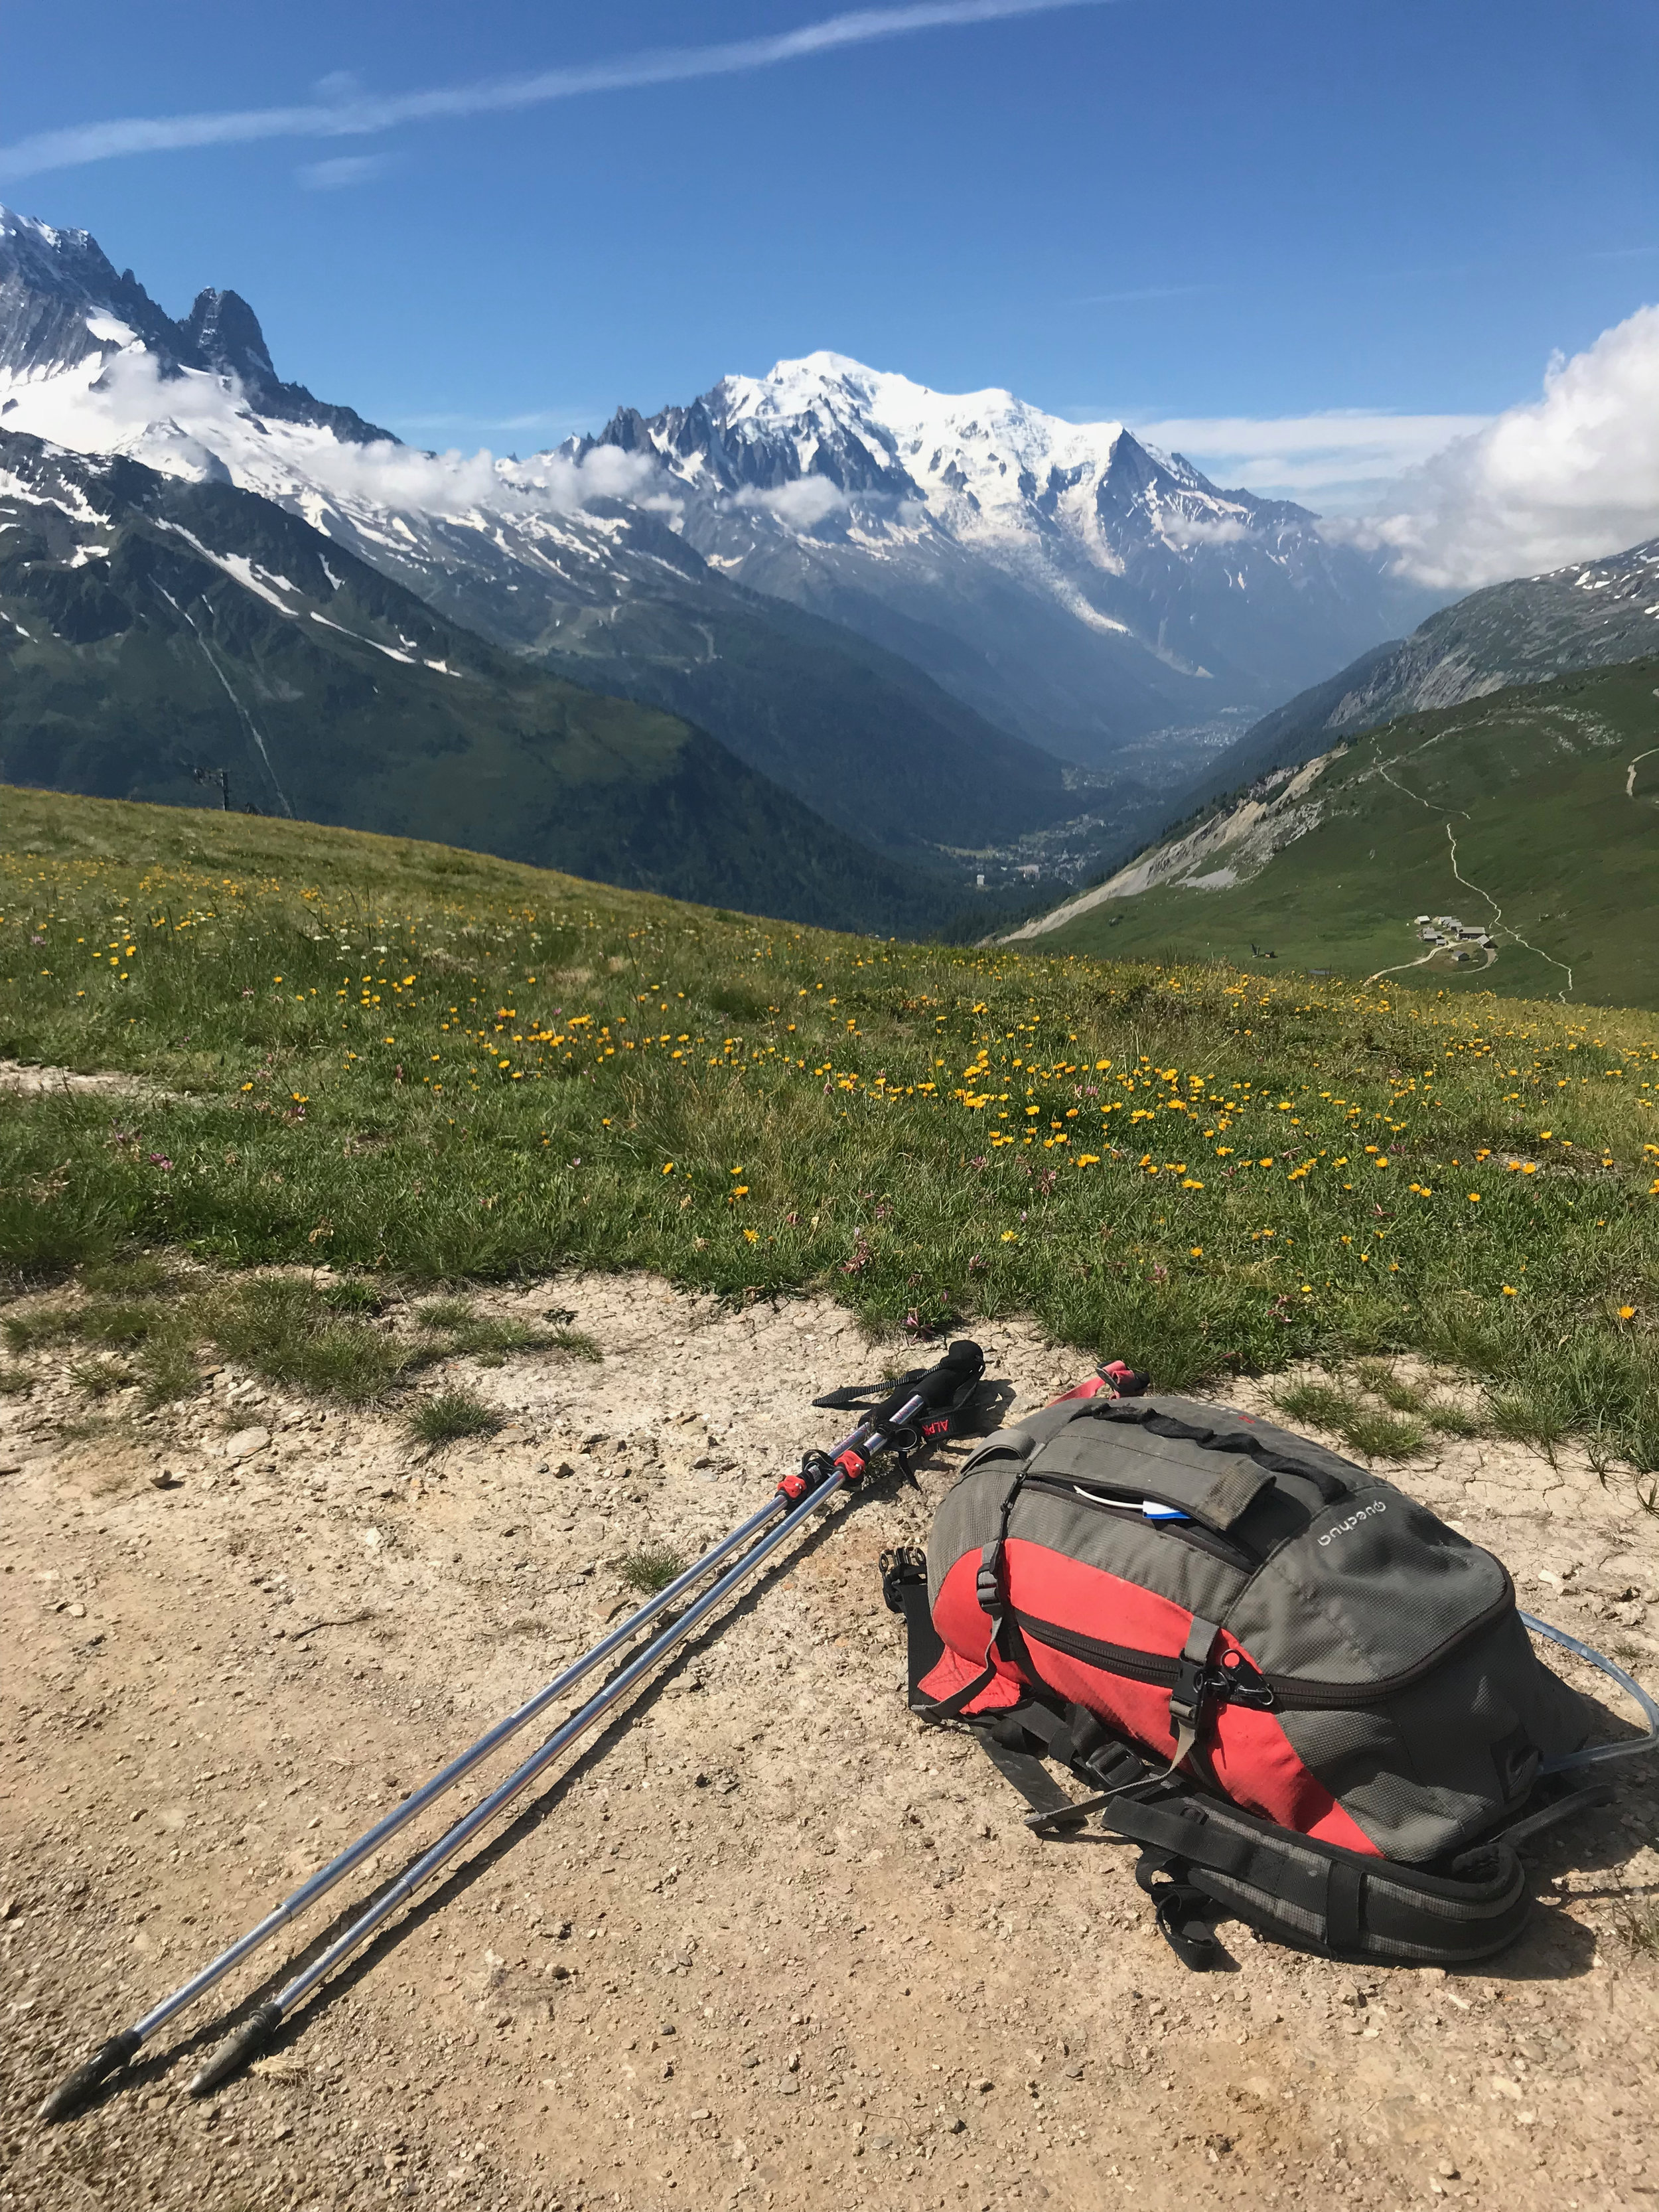 Quechua 20-litre backpack, purchased in  Decathlon . Poles by  Alpkit.com .